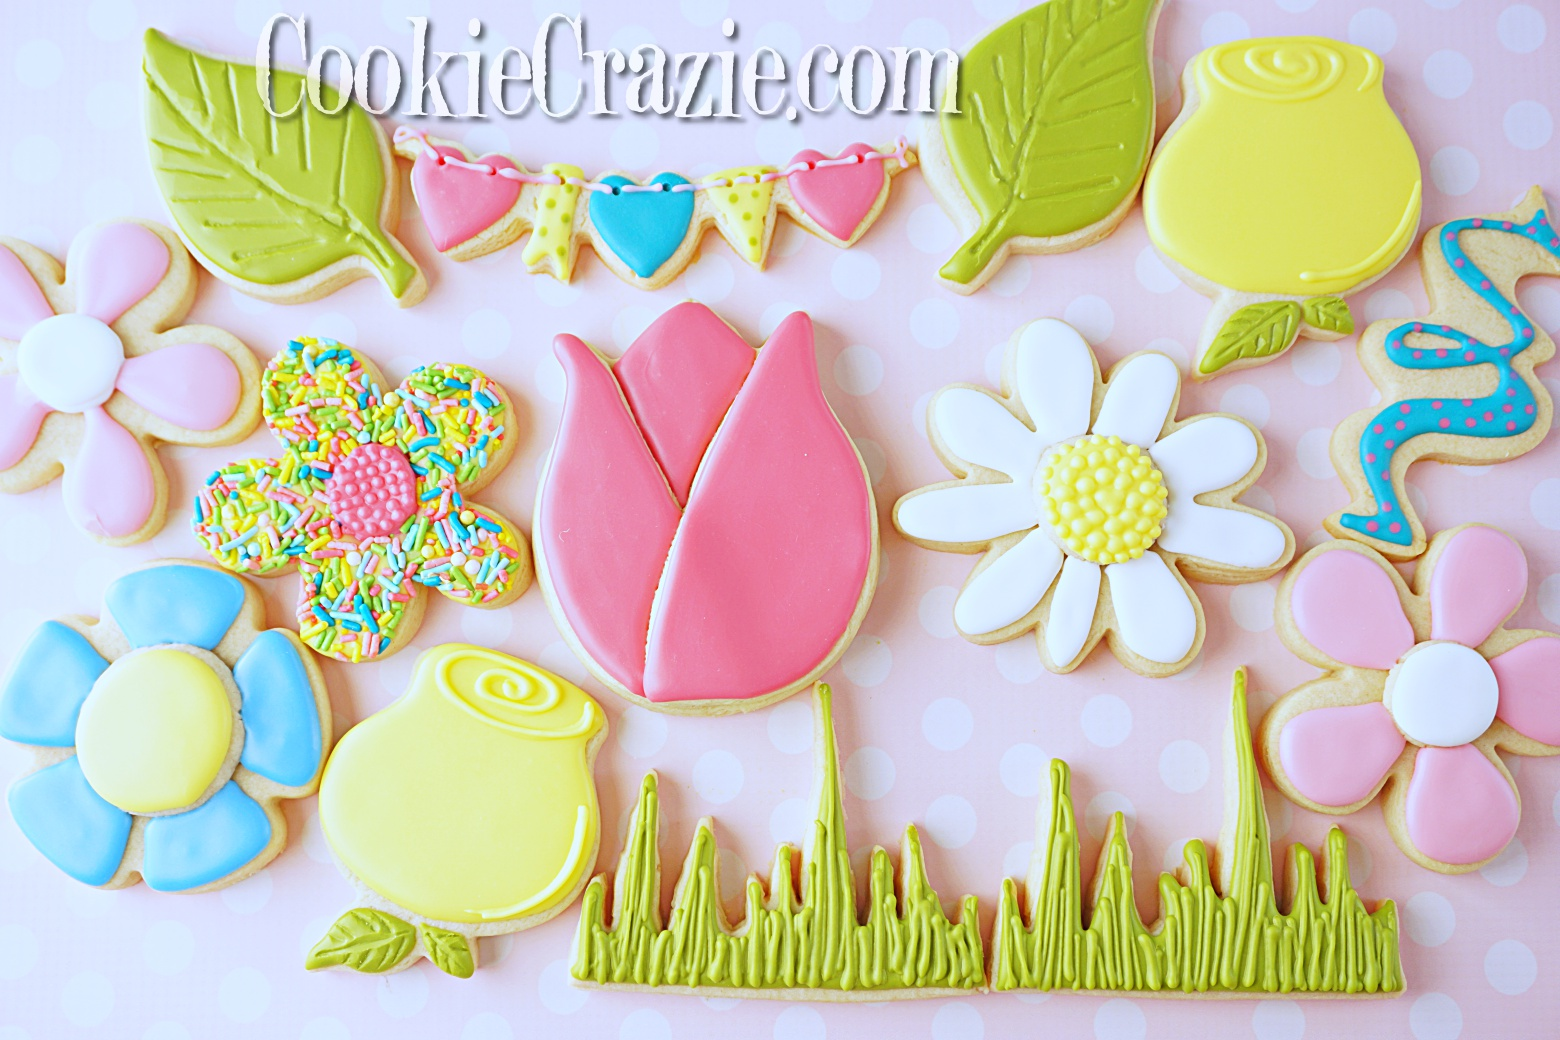 Grass Decorated Sugar Cookie YouTube video  HERE